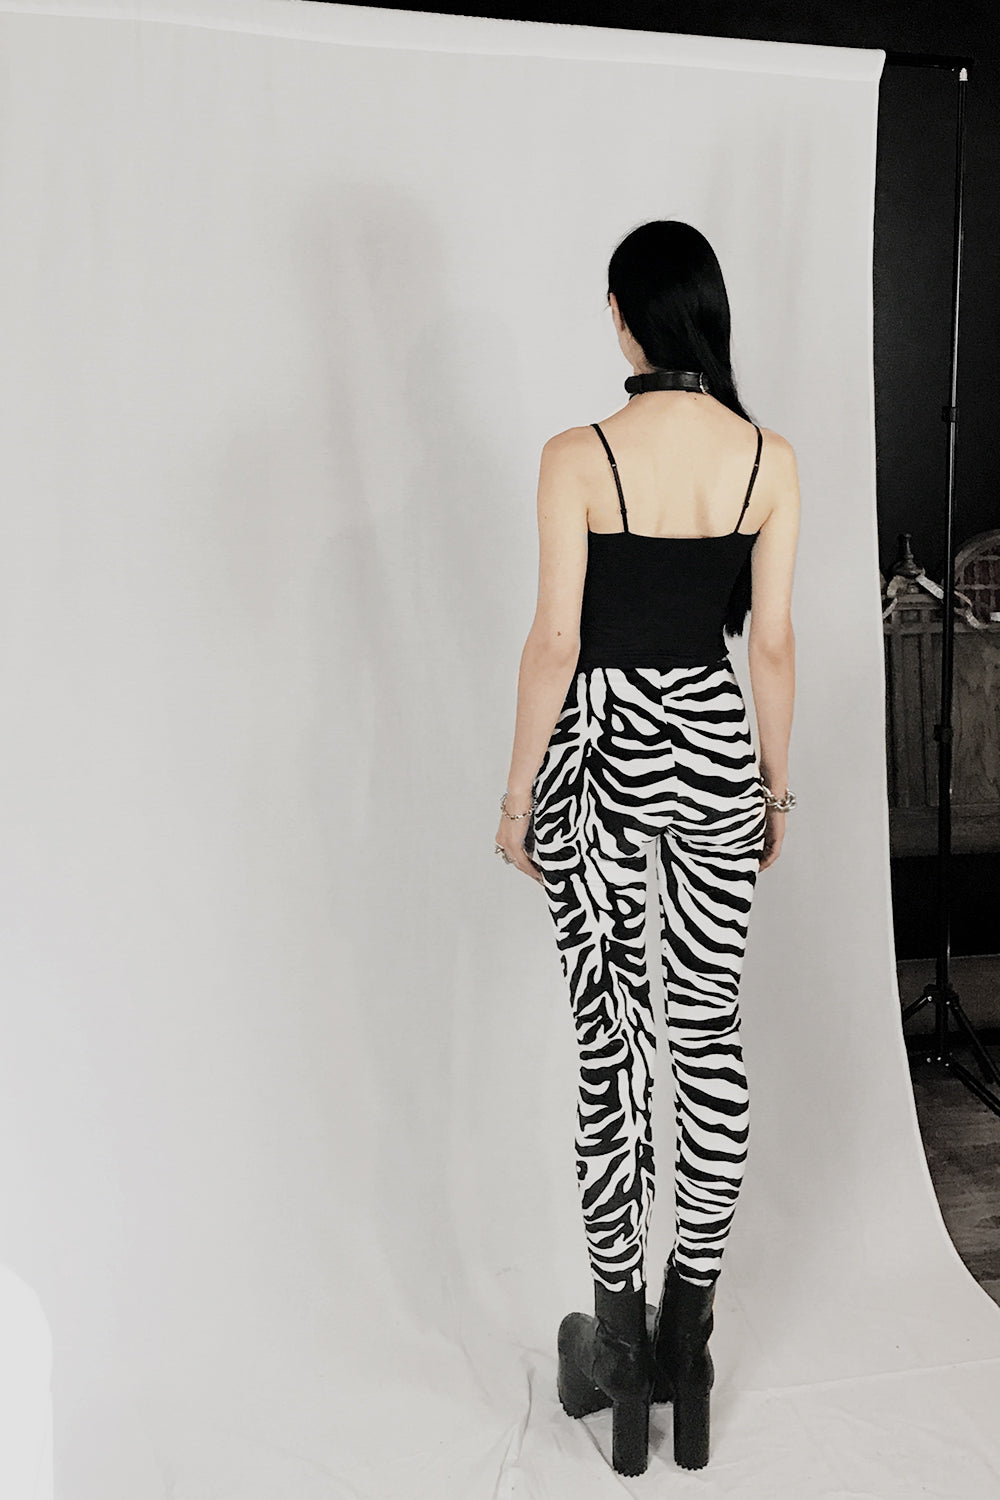 Z IN STOCK Velvet Grommet Pants Size S・Zebra, bottoms, BAD VIBES, BACKBITE